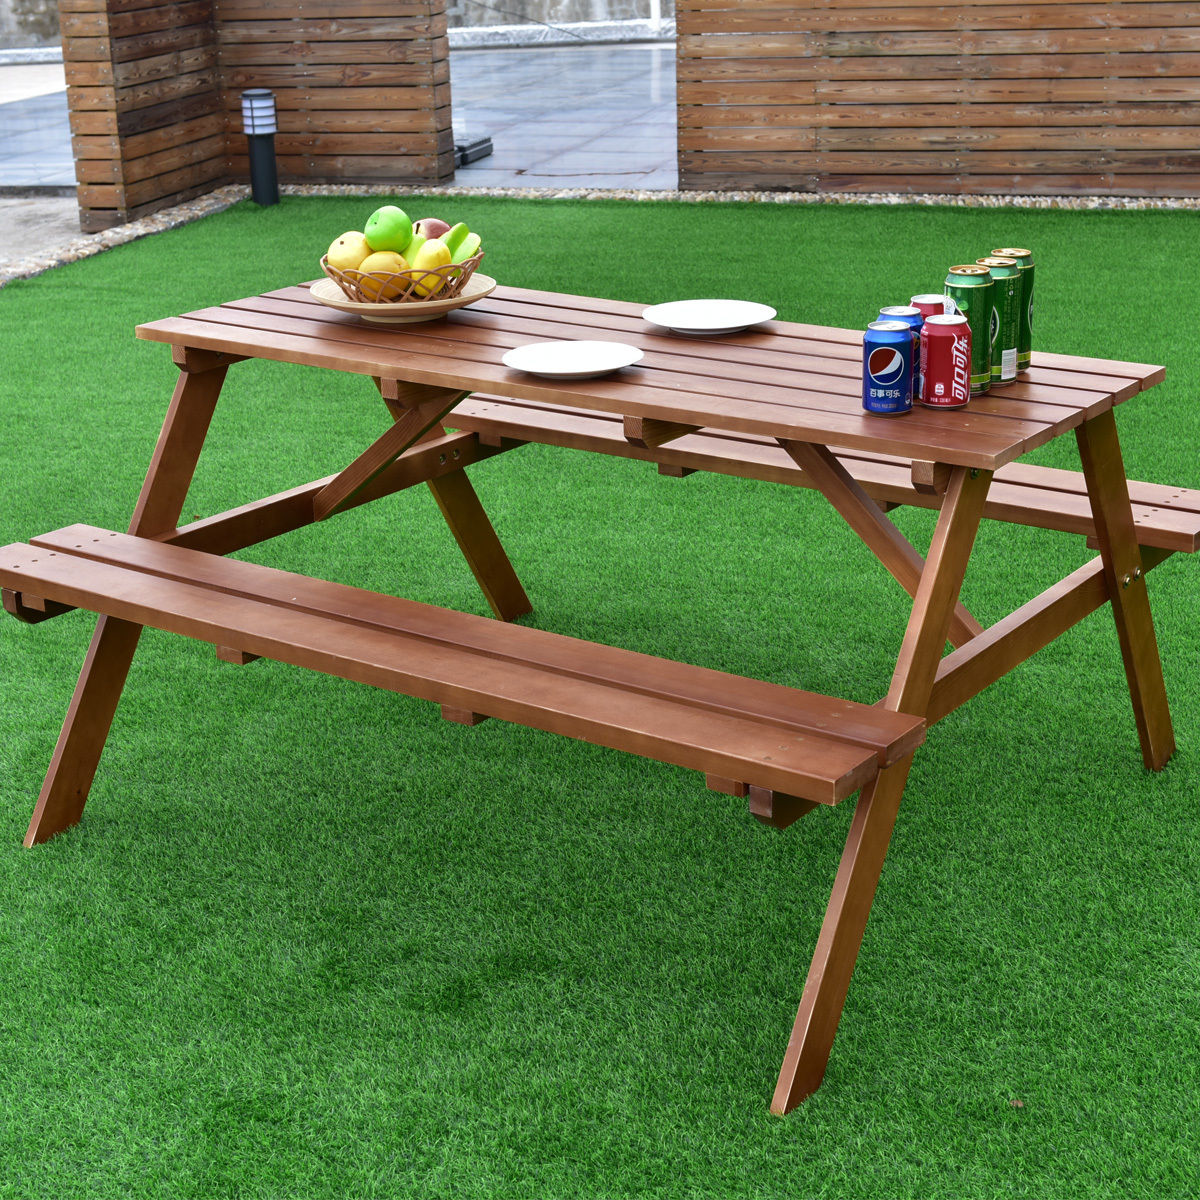 costway solid pine wood picnic table w attached bench seat garden backyard outdoor